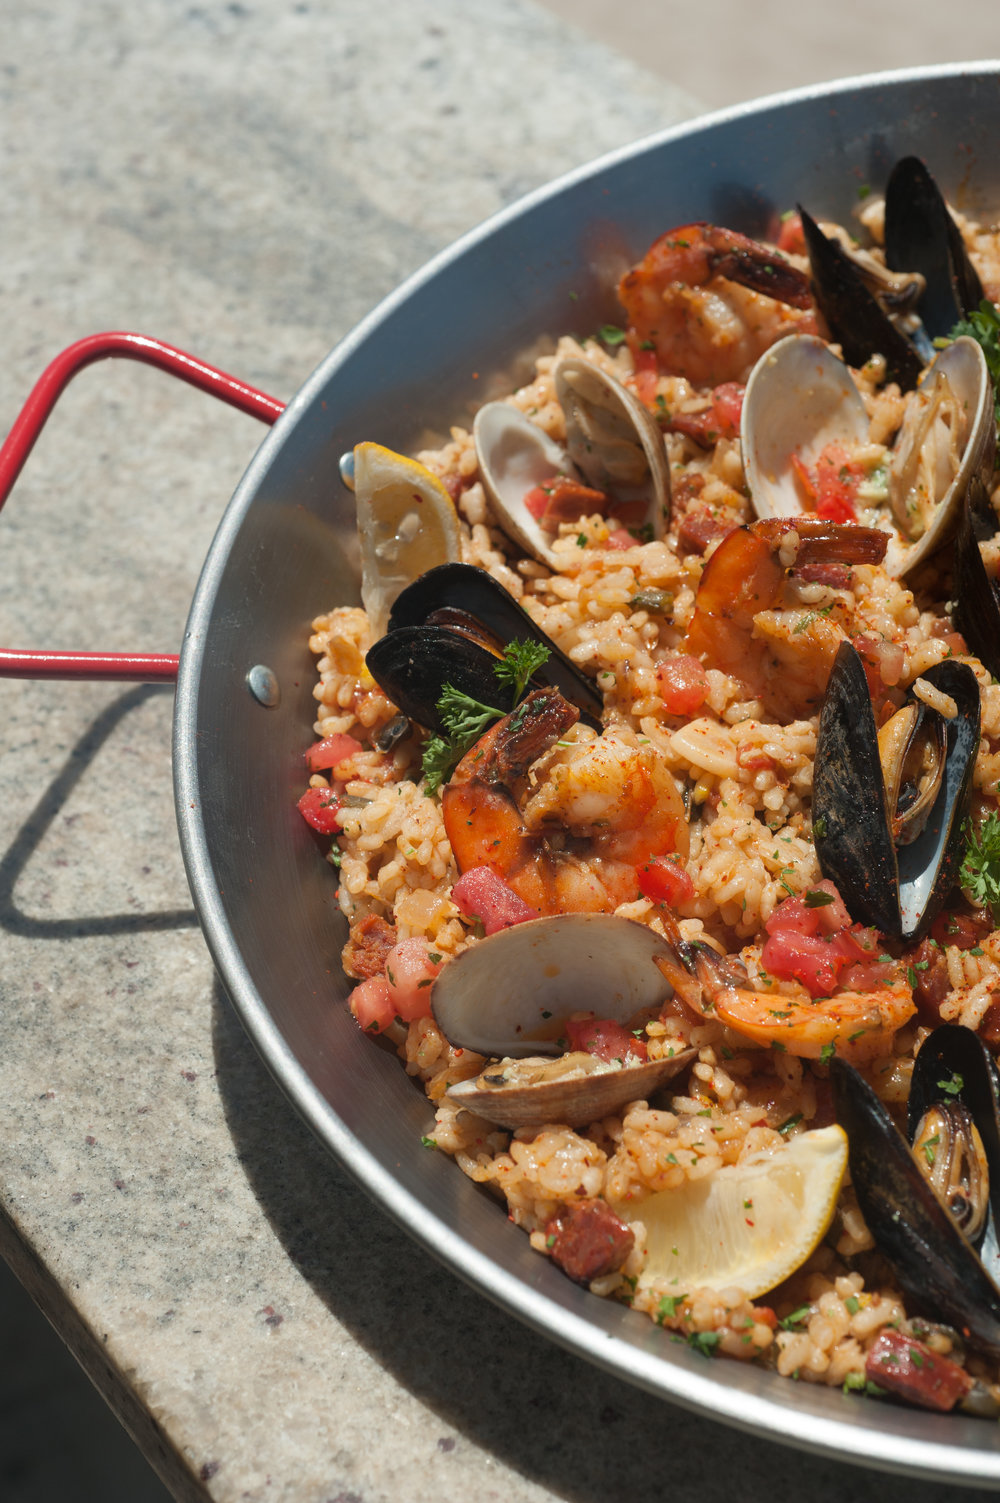 PAELLA - EXCLUSIVELY SATURDAY AND SUNDAYFROM 5:00PM UNTIL CLOSERESERVATIONS RECOMMENDED